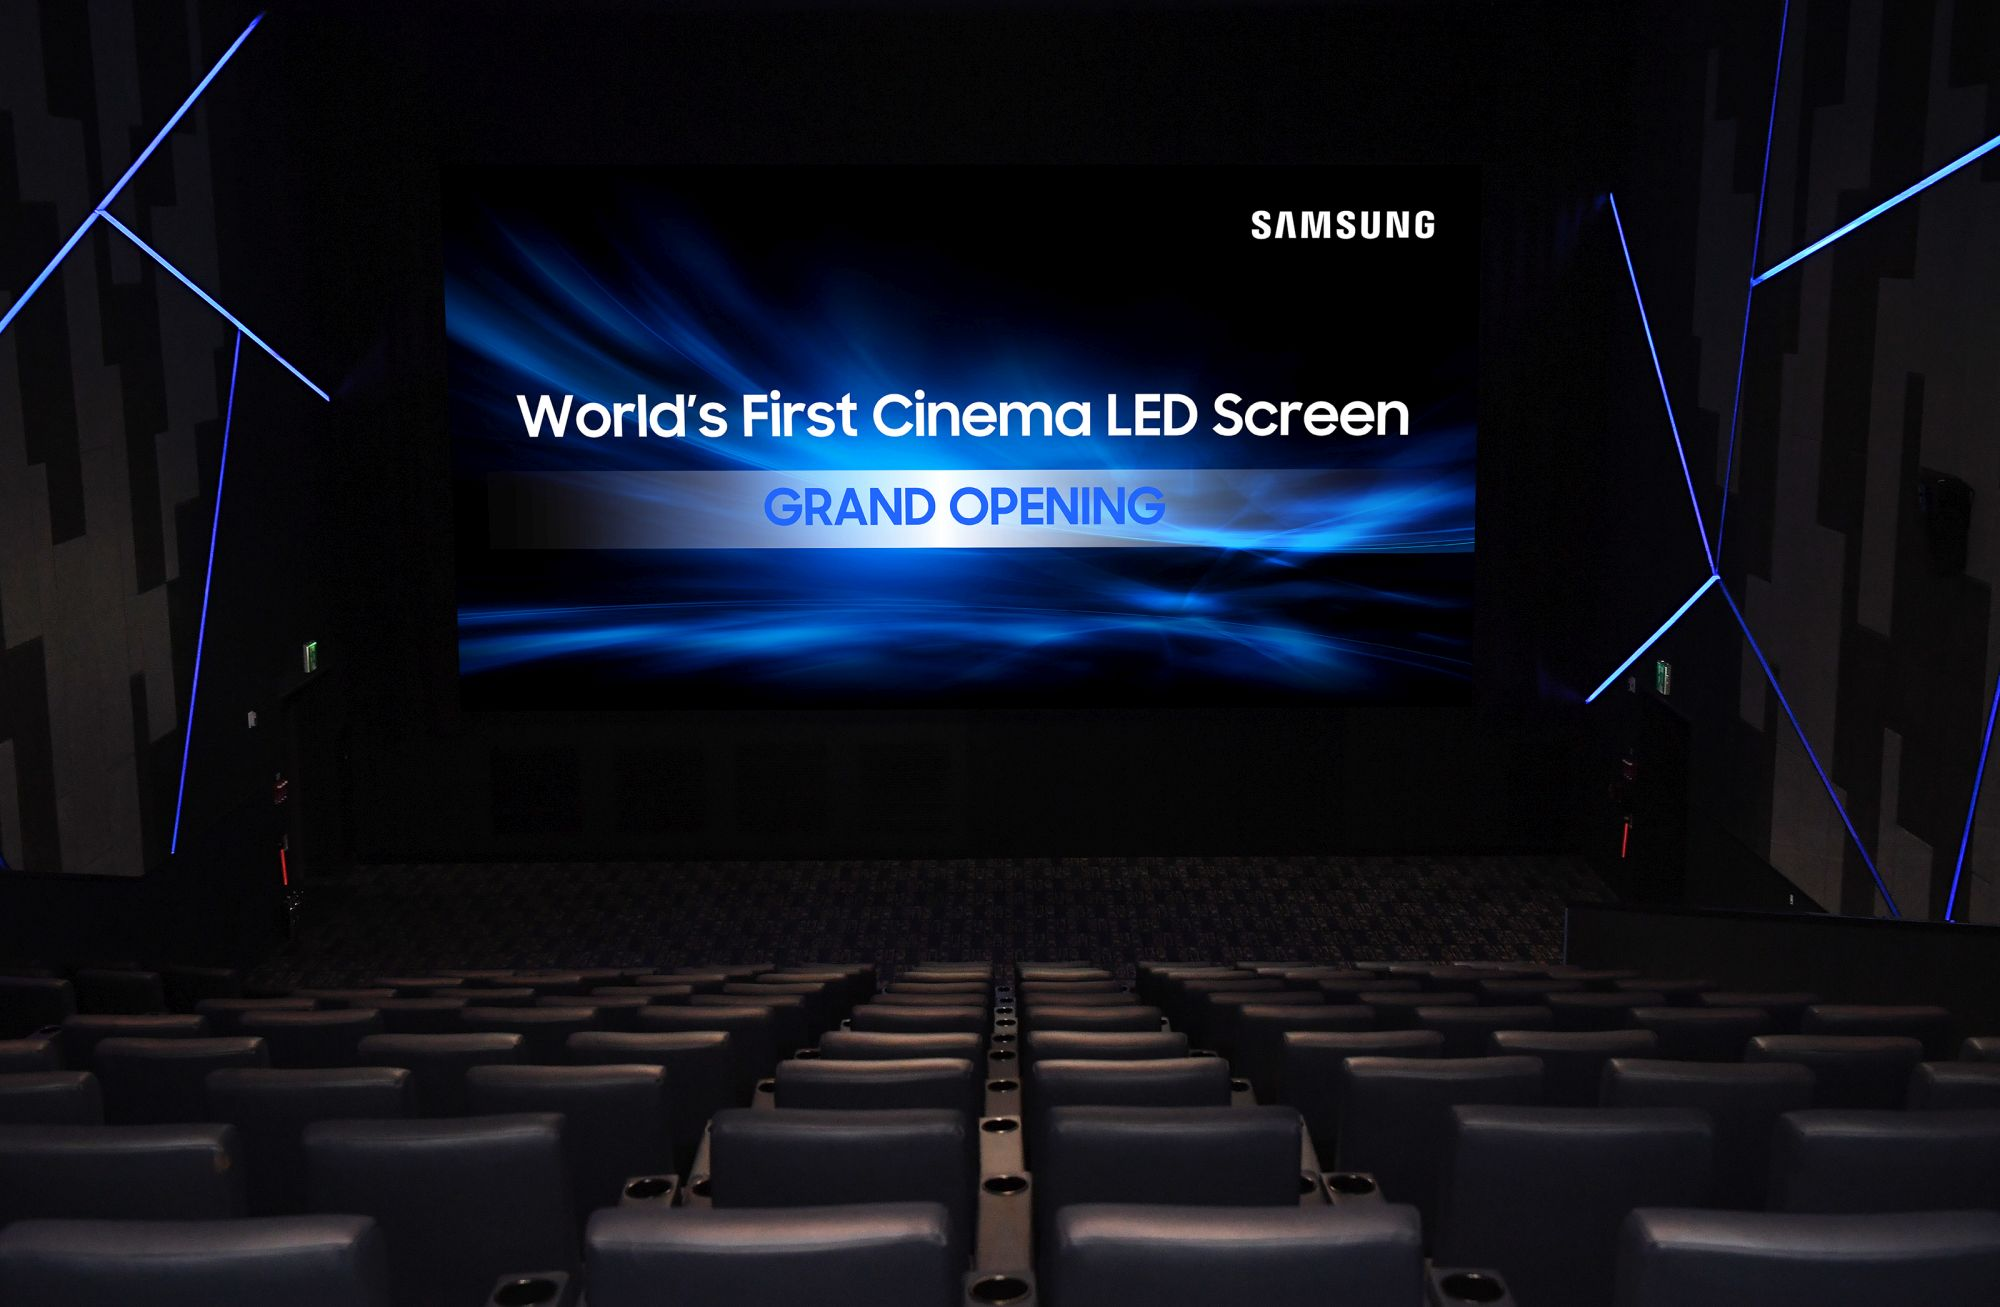 Cinema-LED-Screen-Photo-for-Global-Press-Release-2